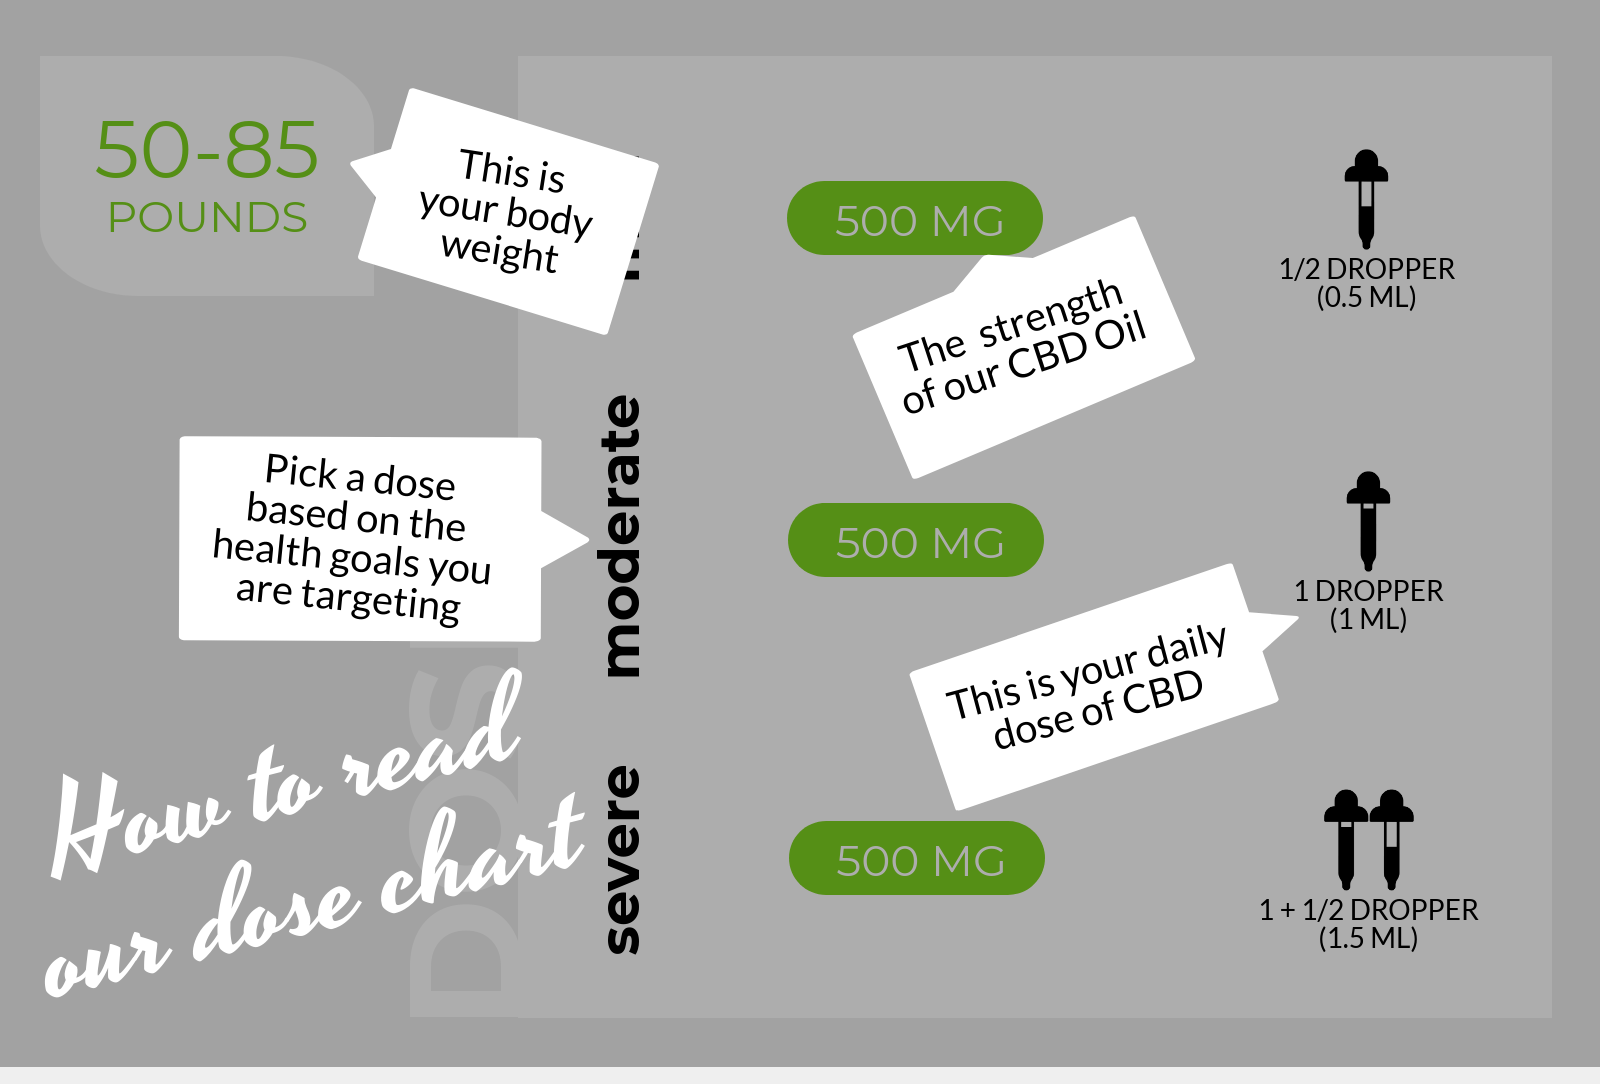 How to read our CBD dose chart: (1) Your body weight is displayed in the top right (2) Pick a dose based on the health goals you are targeting (3) this is the strength of our CBD oil (4) this is your daily dose of CBD